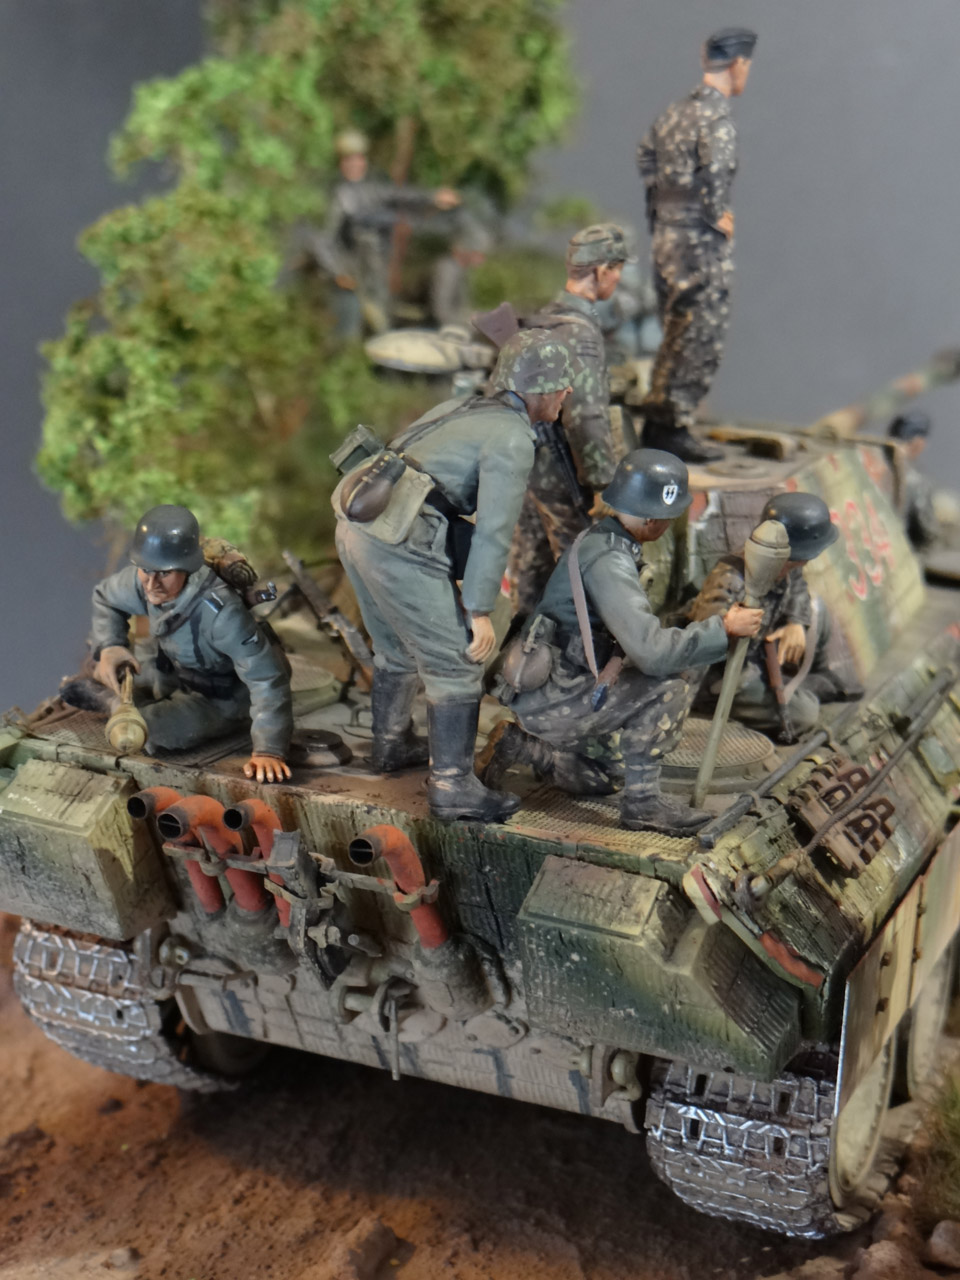 Dioramas and Vignettes: Normandy, 1944, photo #14